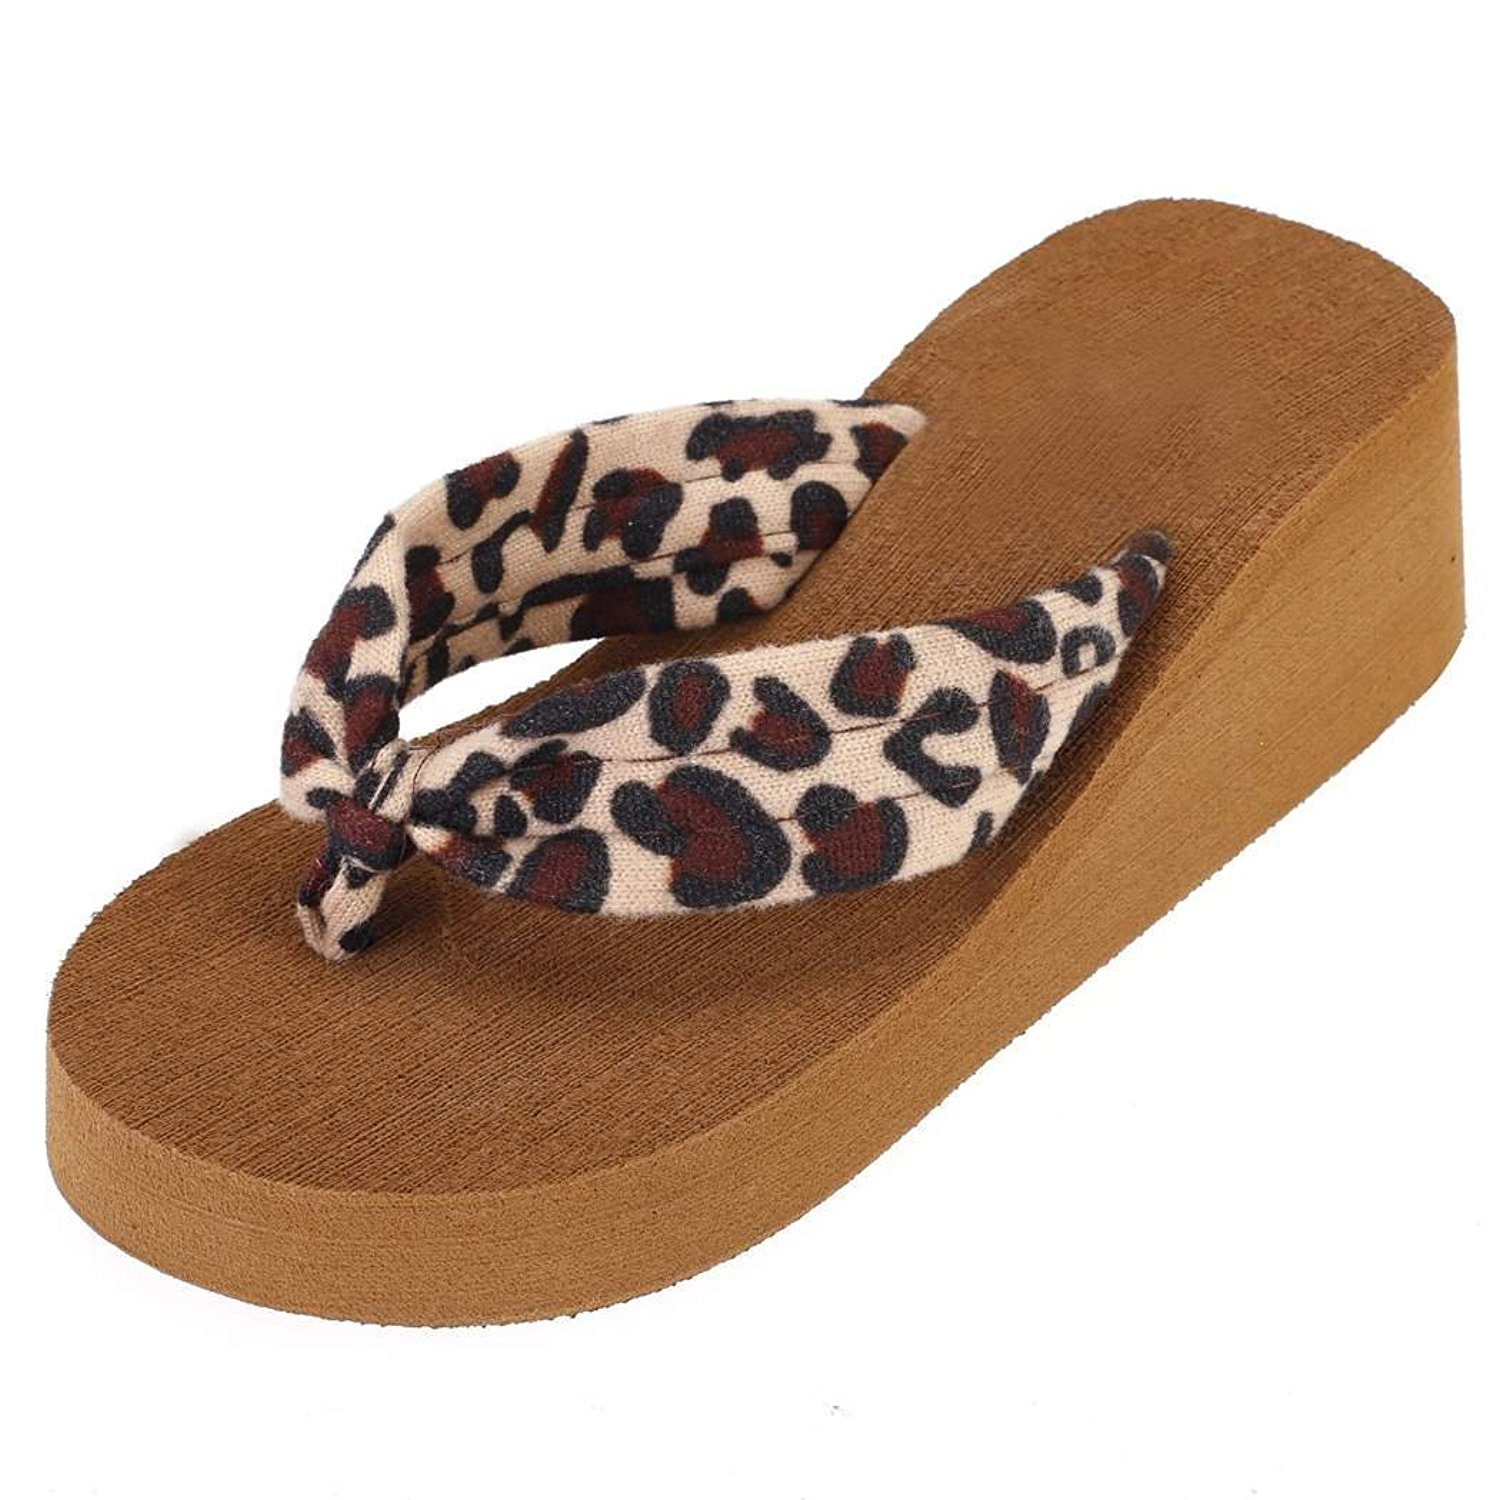 Maybest Ladies Summer Platform Flip Flops Thong Wedge Beach Wedge Heel Sandals